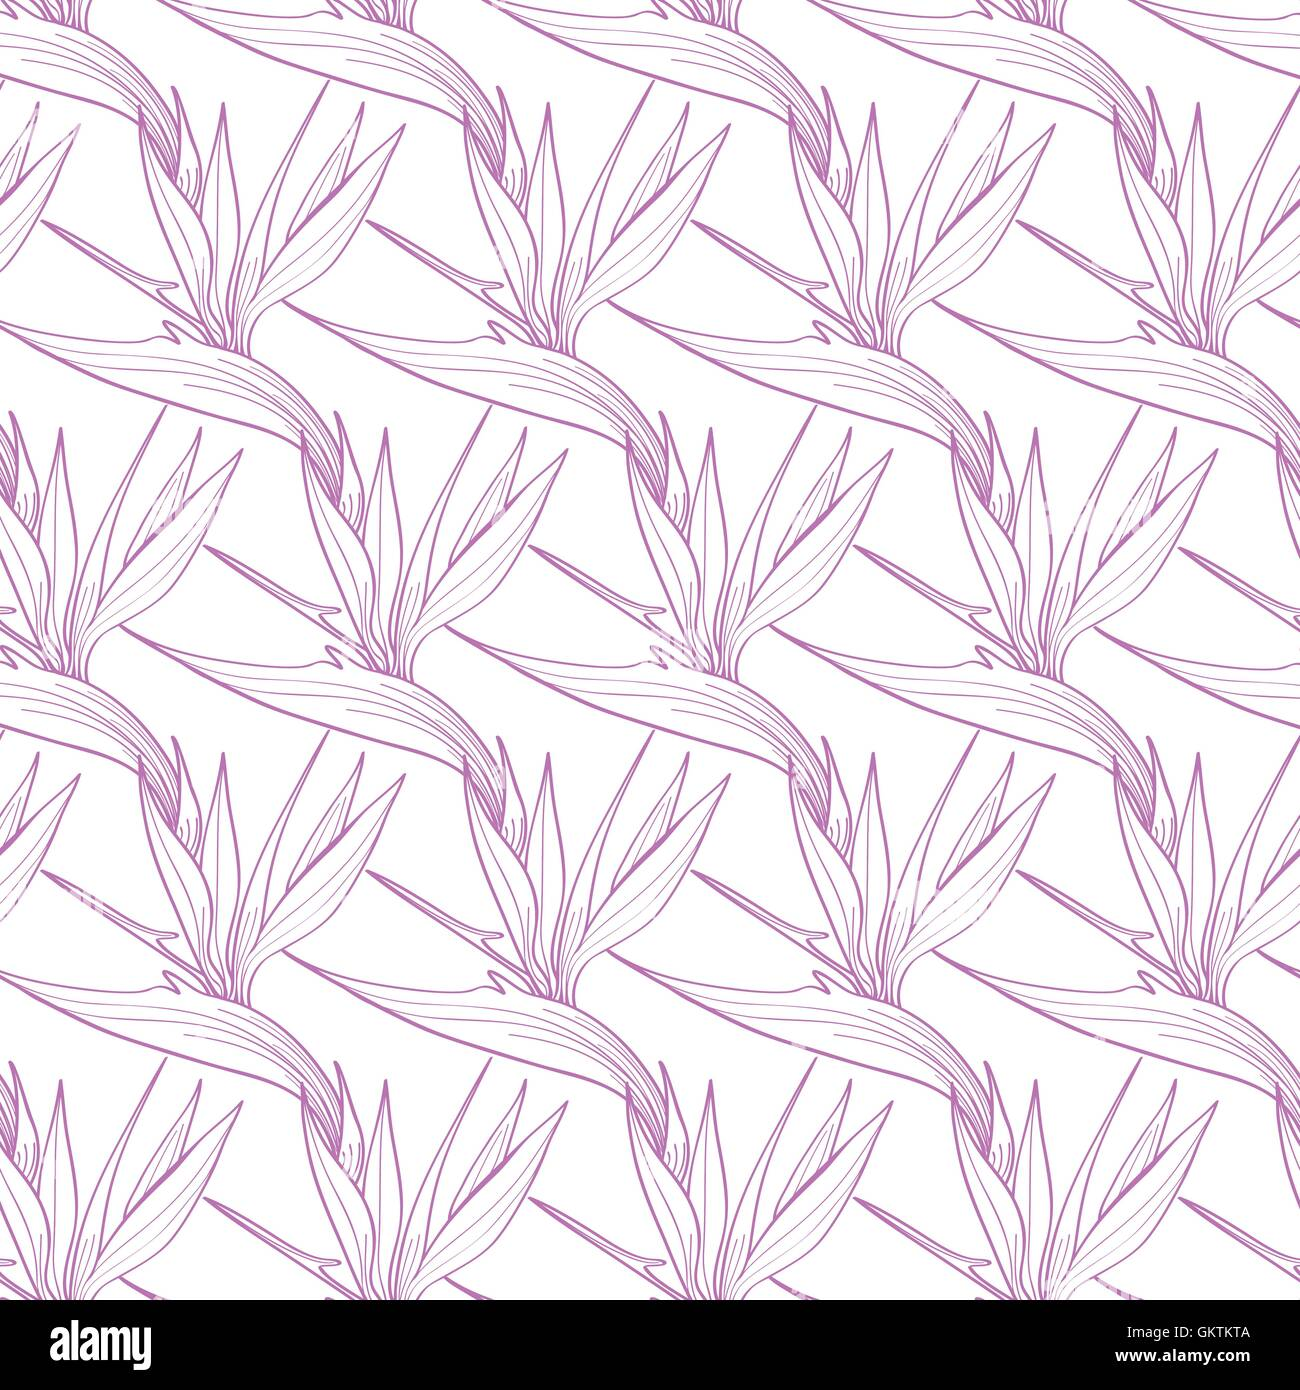 Vector Birds of Paradise Flowers Seamless Pattern - Stock Image